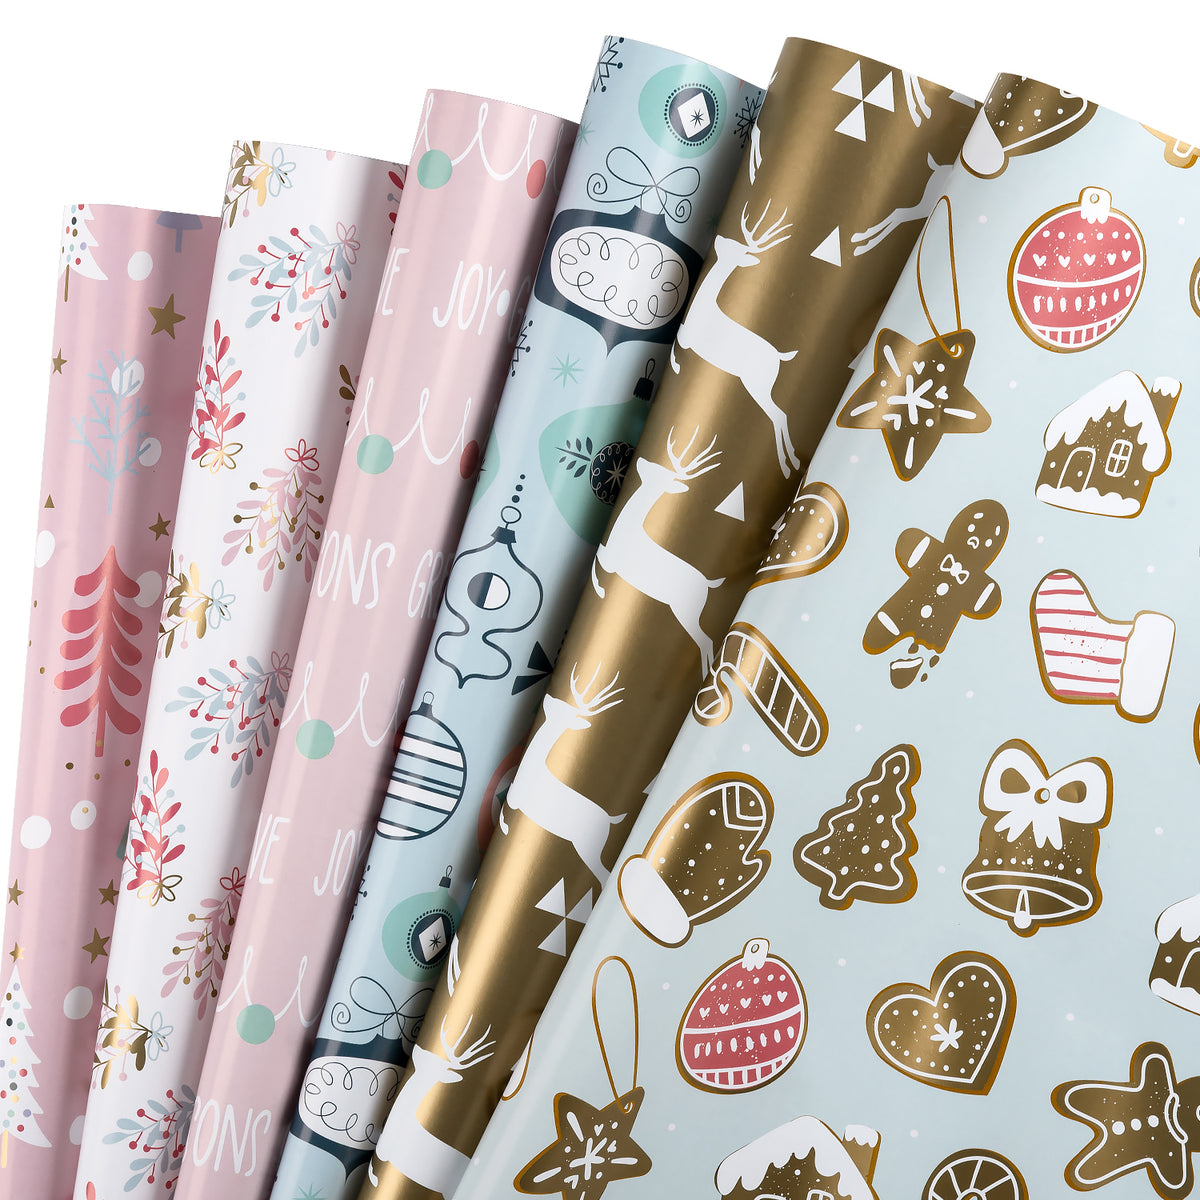 Wrapaholic-Reindeer-and-Christmas-Tree-Design- Gift-Wrapping-Paper-Sheet-1